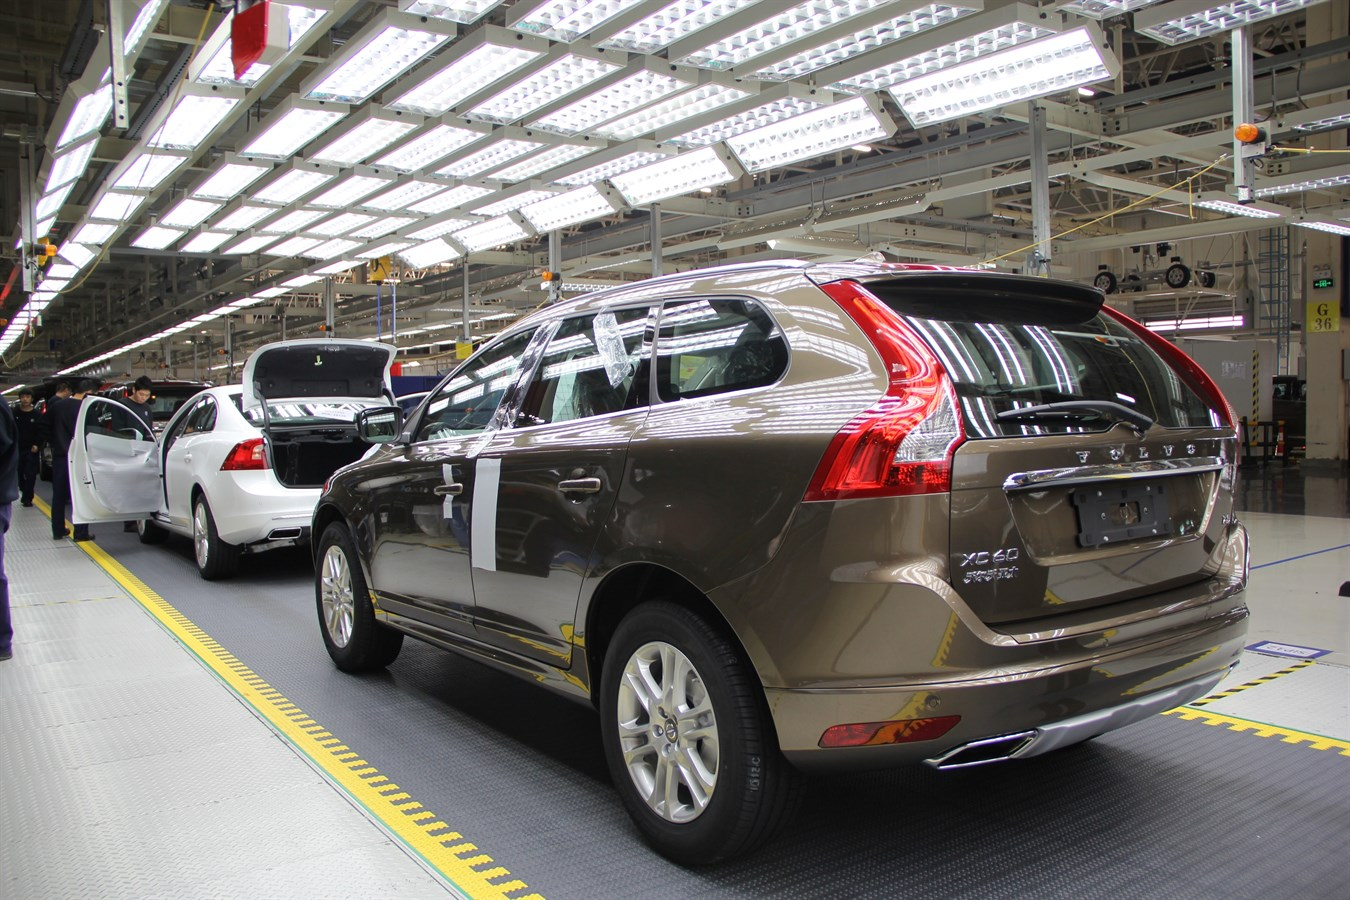 Volvo Cars starts XC60 production in China - Volvo Car Group Global Media Newsroom